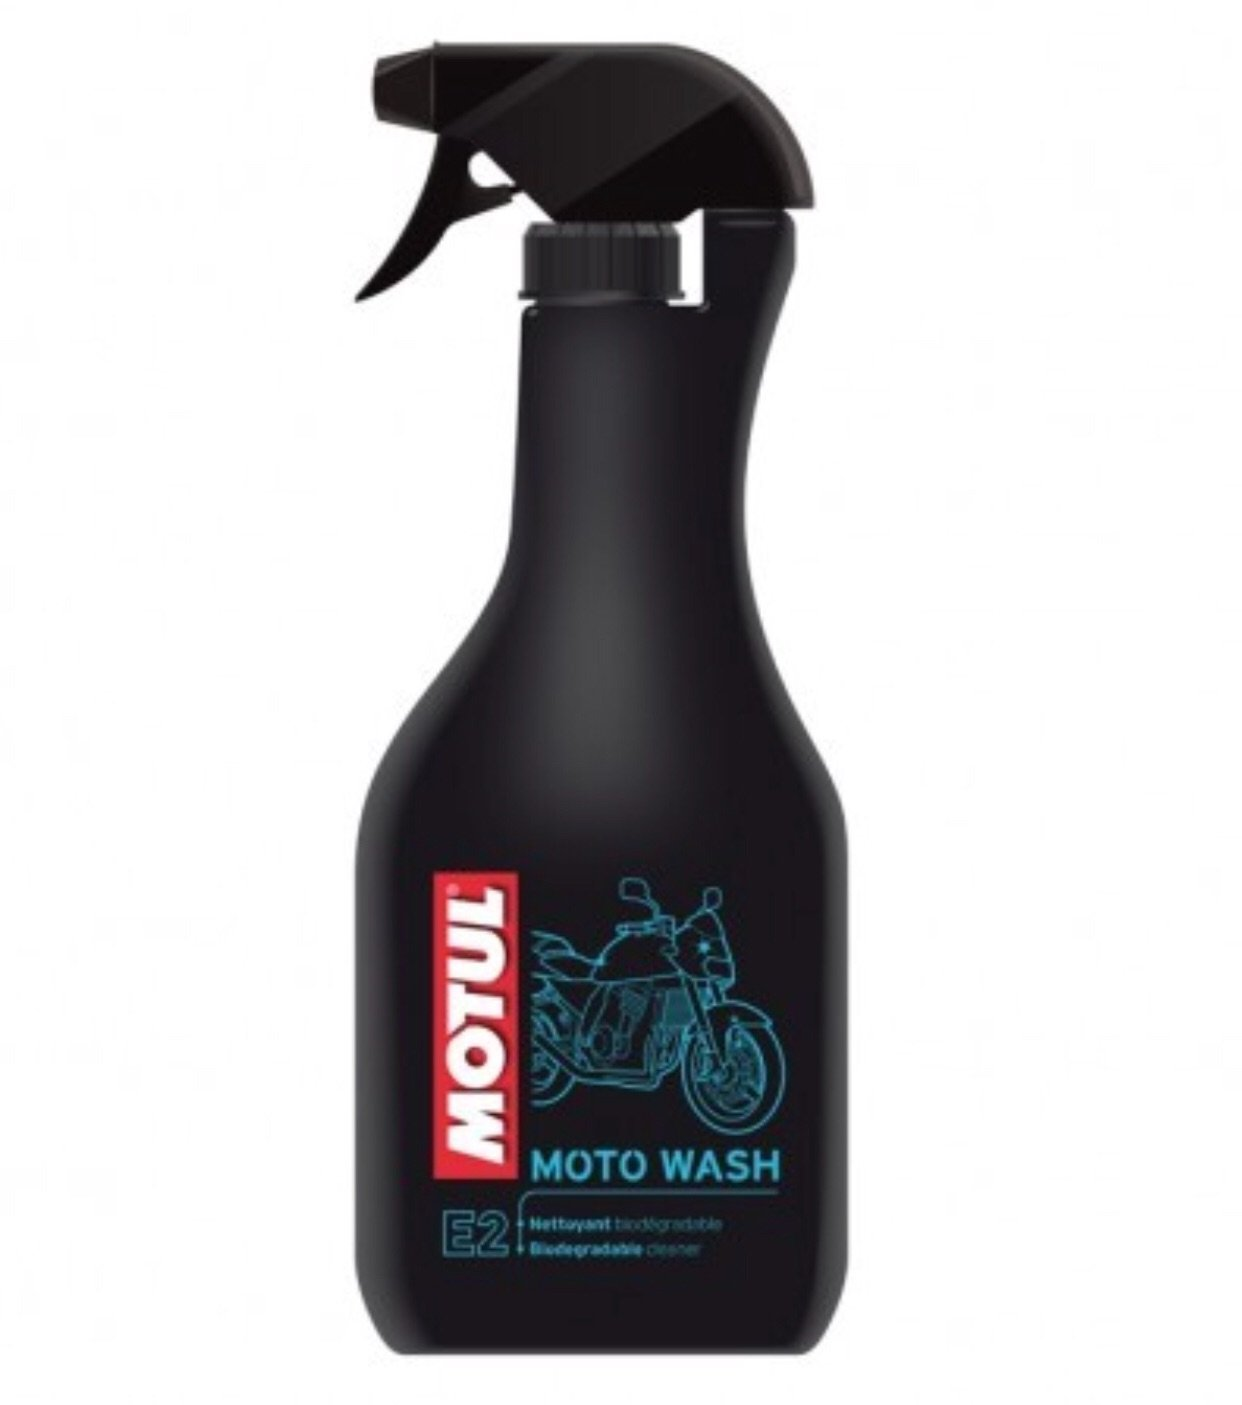 Motul E2 Moto Wash, Bike cleaner, Motul - Averys Motorcycles